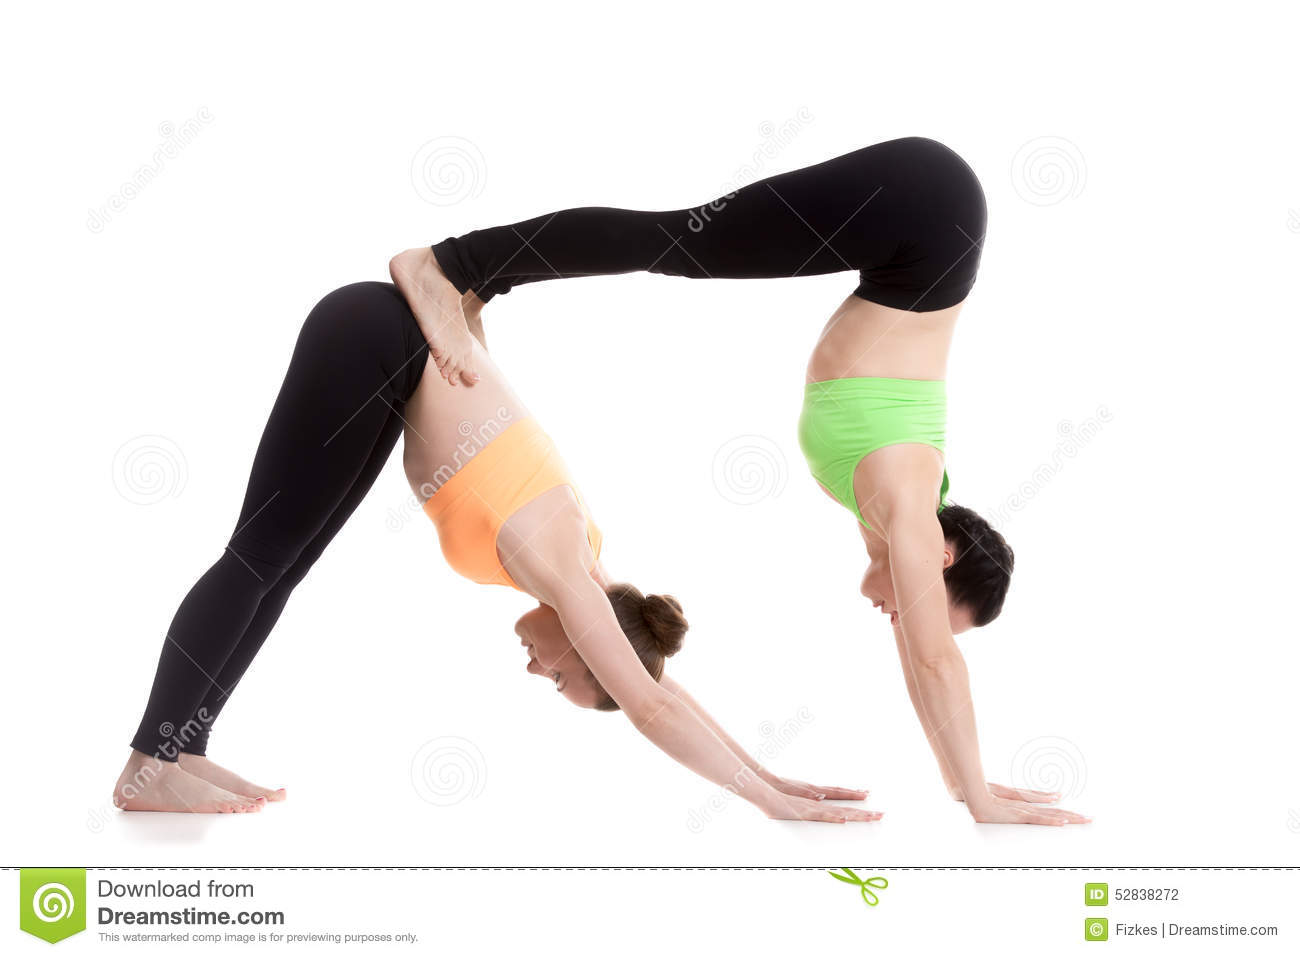 Download Acroyoga Pose Orientee Vers Le Bas De Yoga Chien Photo Stock